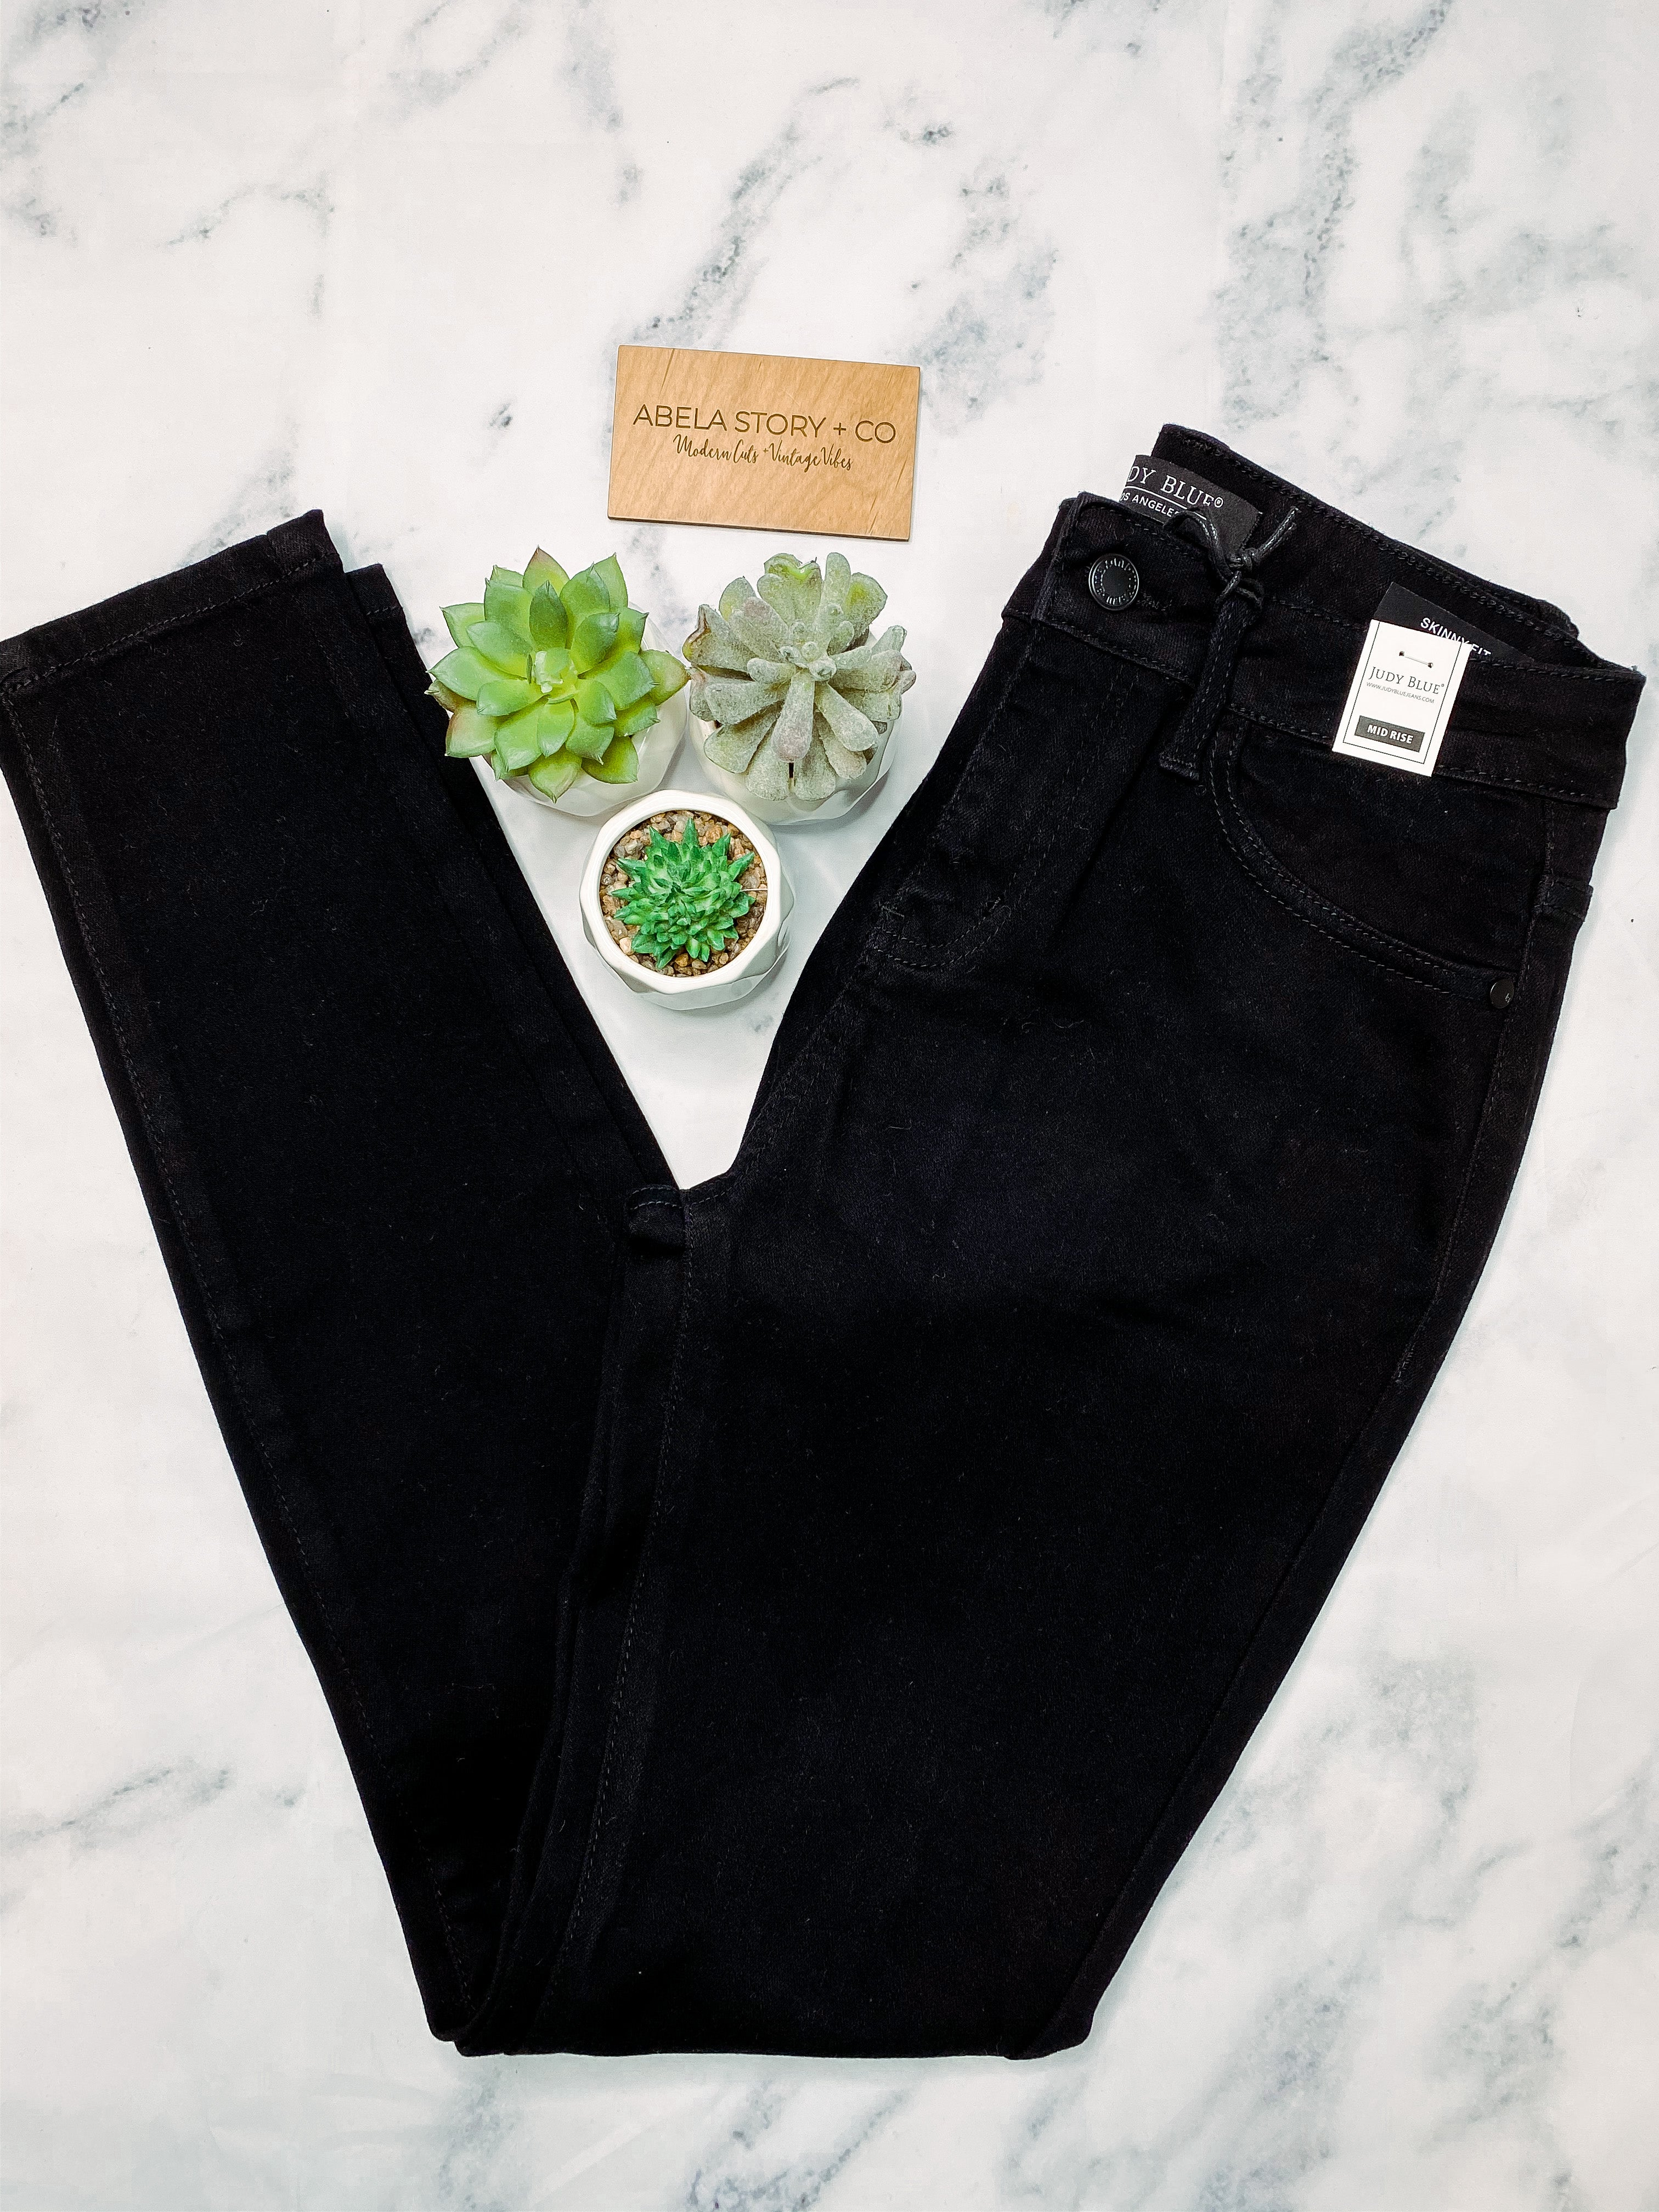 Challenge Accepted Black Mid-Rise Non- Distressed Skinny Jeans